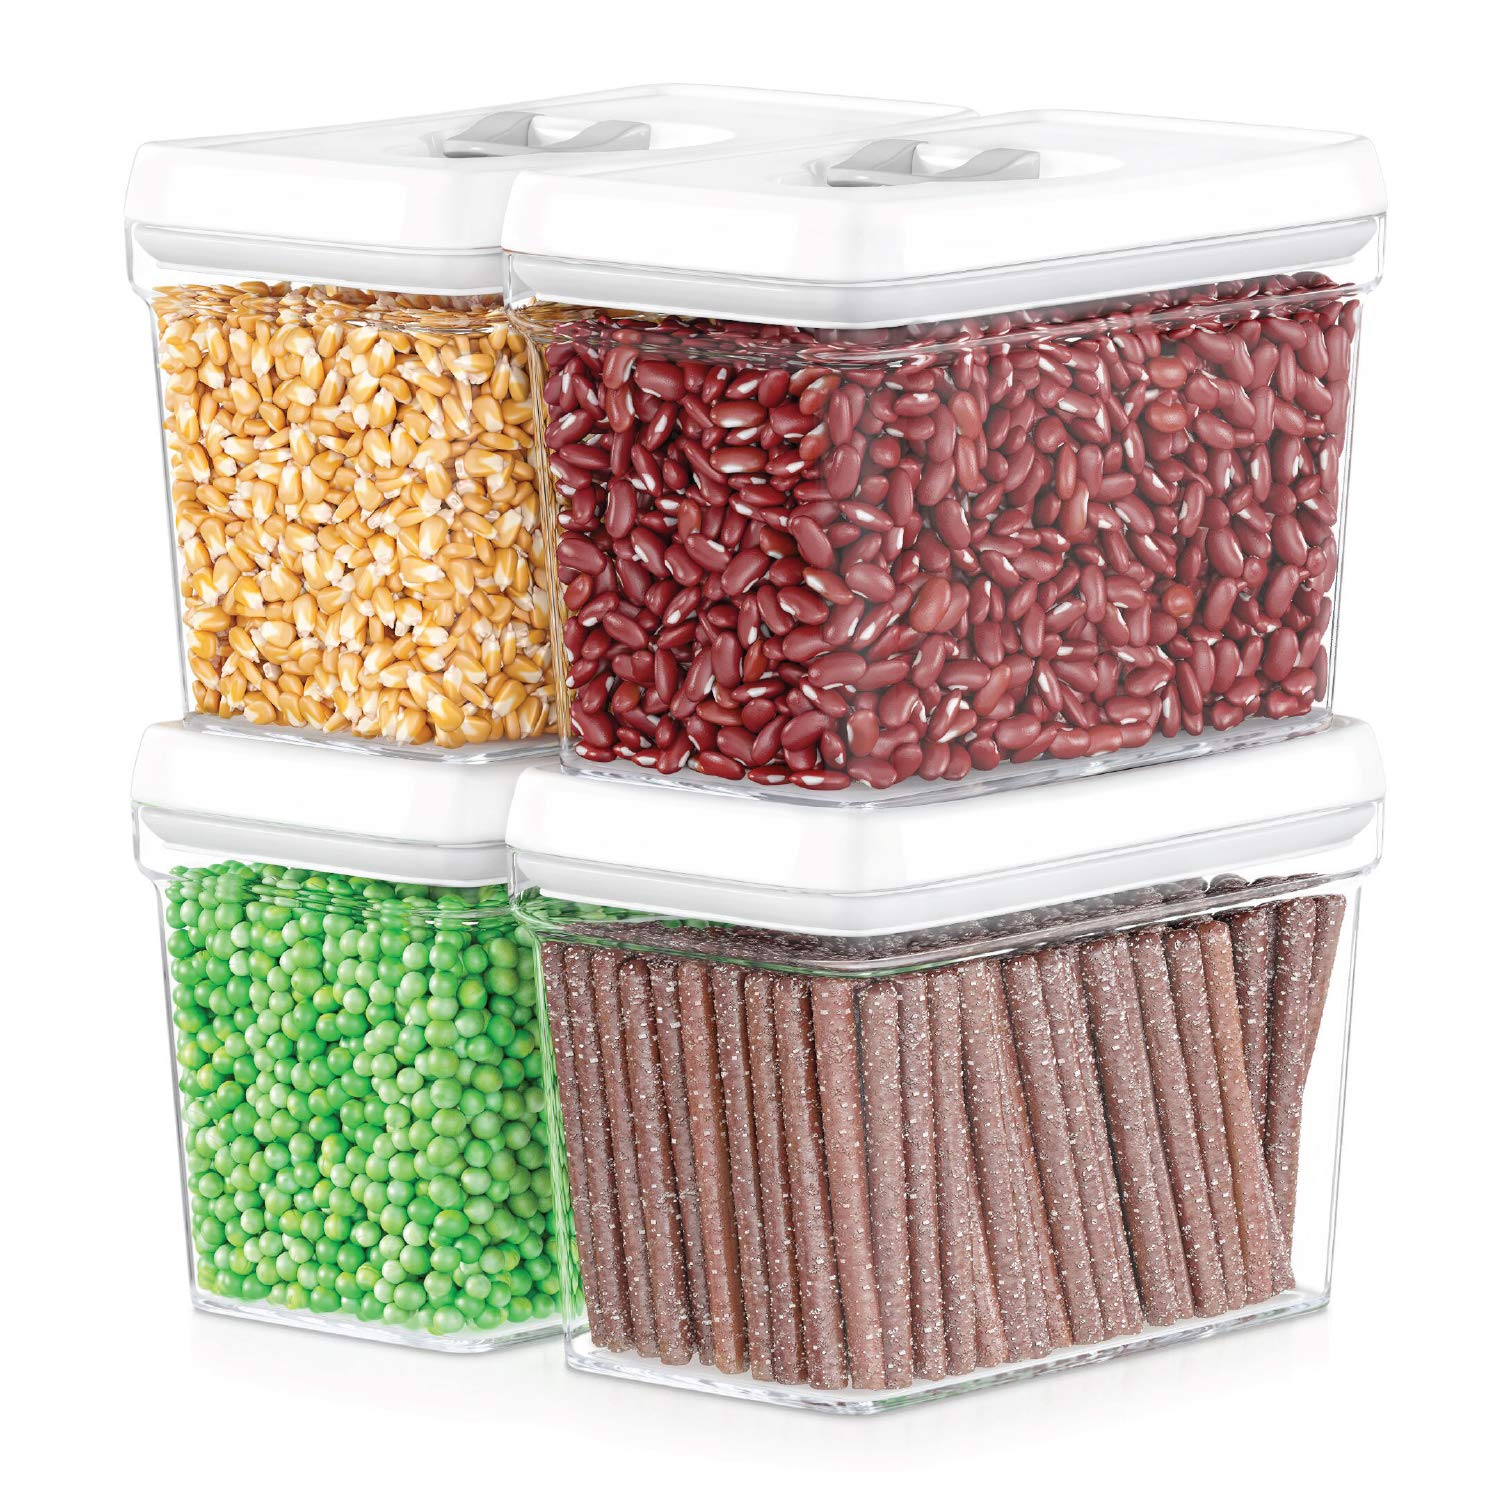 DWËLLZA KITCHEN Airtight Food Storage Containers - Pantry Snacks Kitchen Container, Baking Supplies, 4LB Sugar & Flour Canister - 4 Pc Set All Same Size - Clear Plastic BPA-Free - Keeps Fresh & Dry